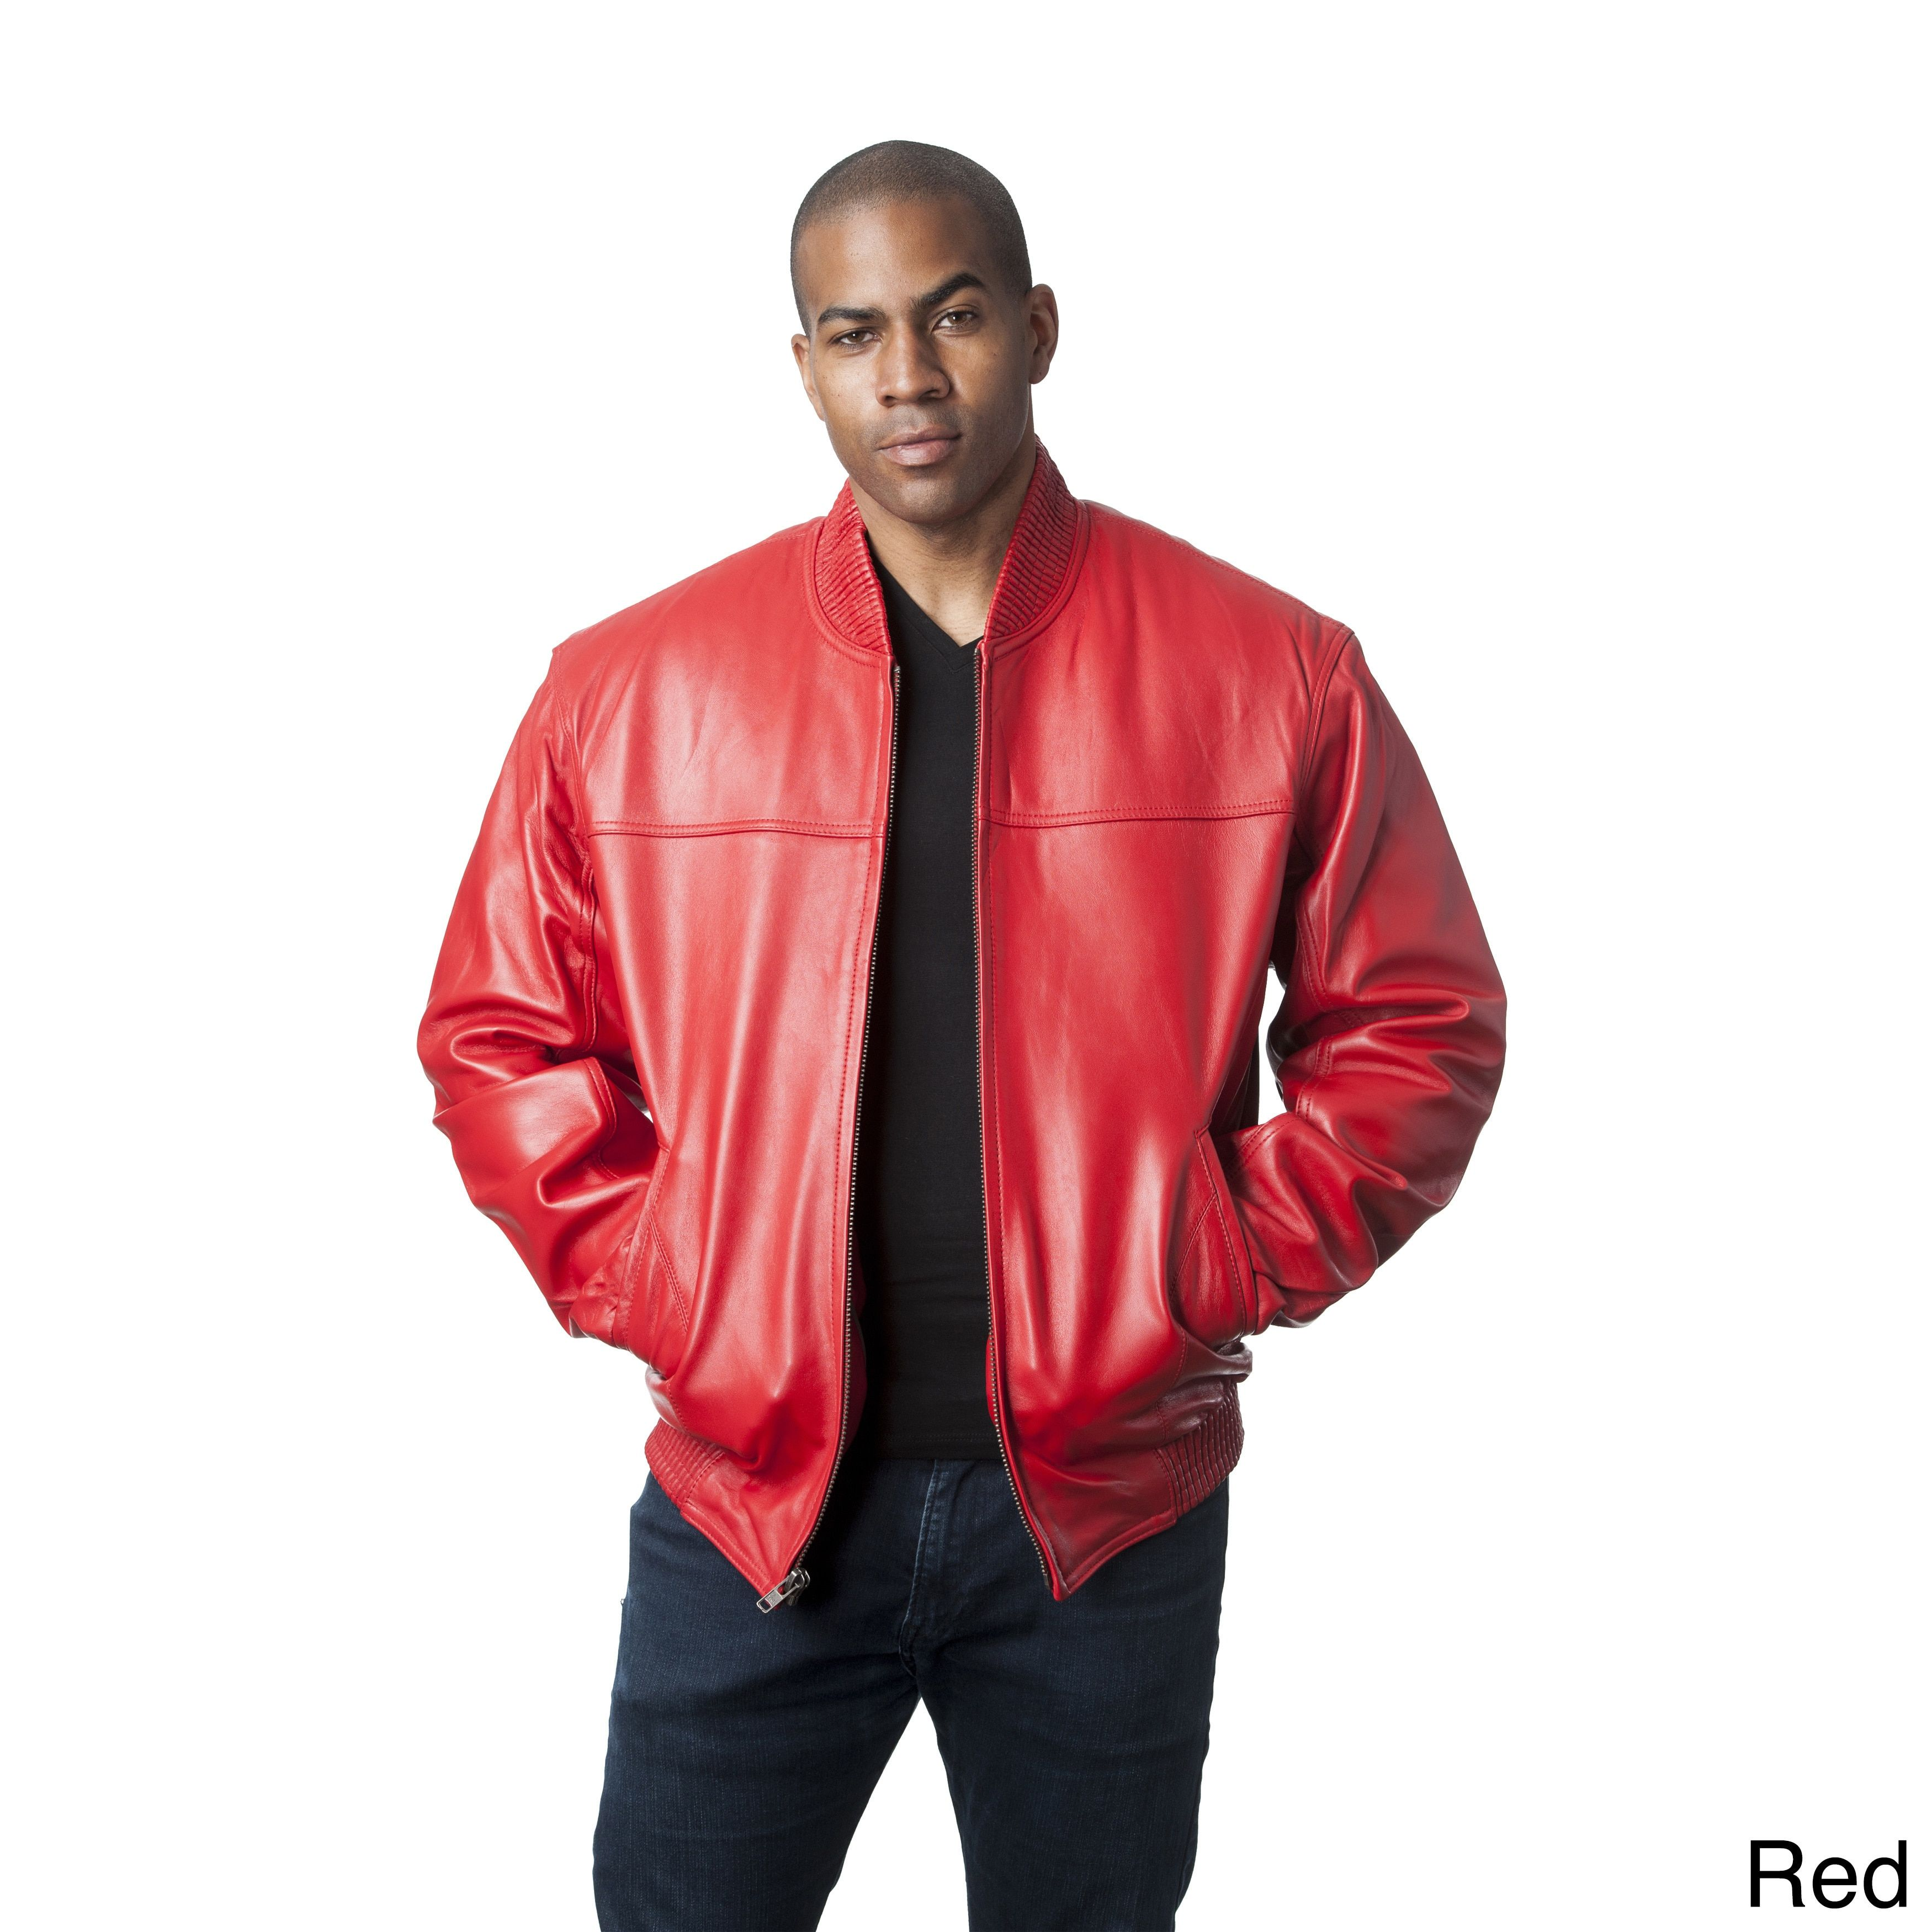 Our Best Men S Outerwear Deals Leather Bomber Jacket Red Jacket Leather Shop Mens Clothing [ 3500 x 3500 Pixel ]